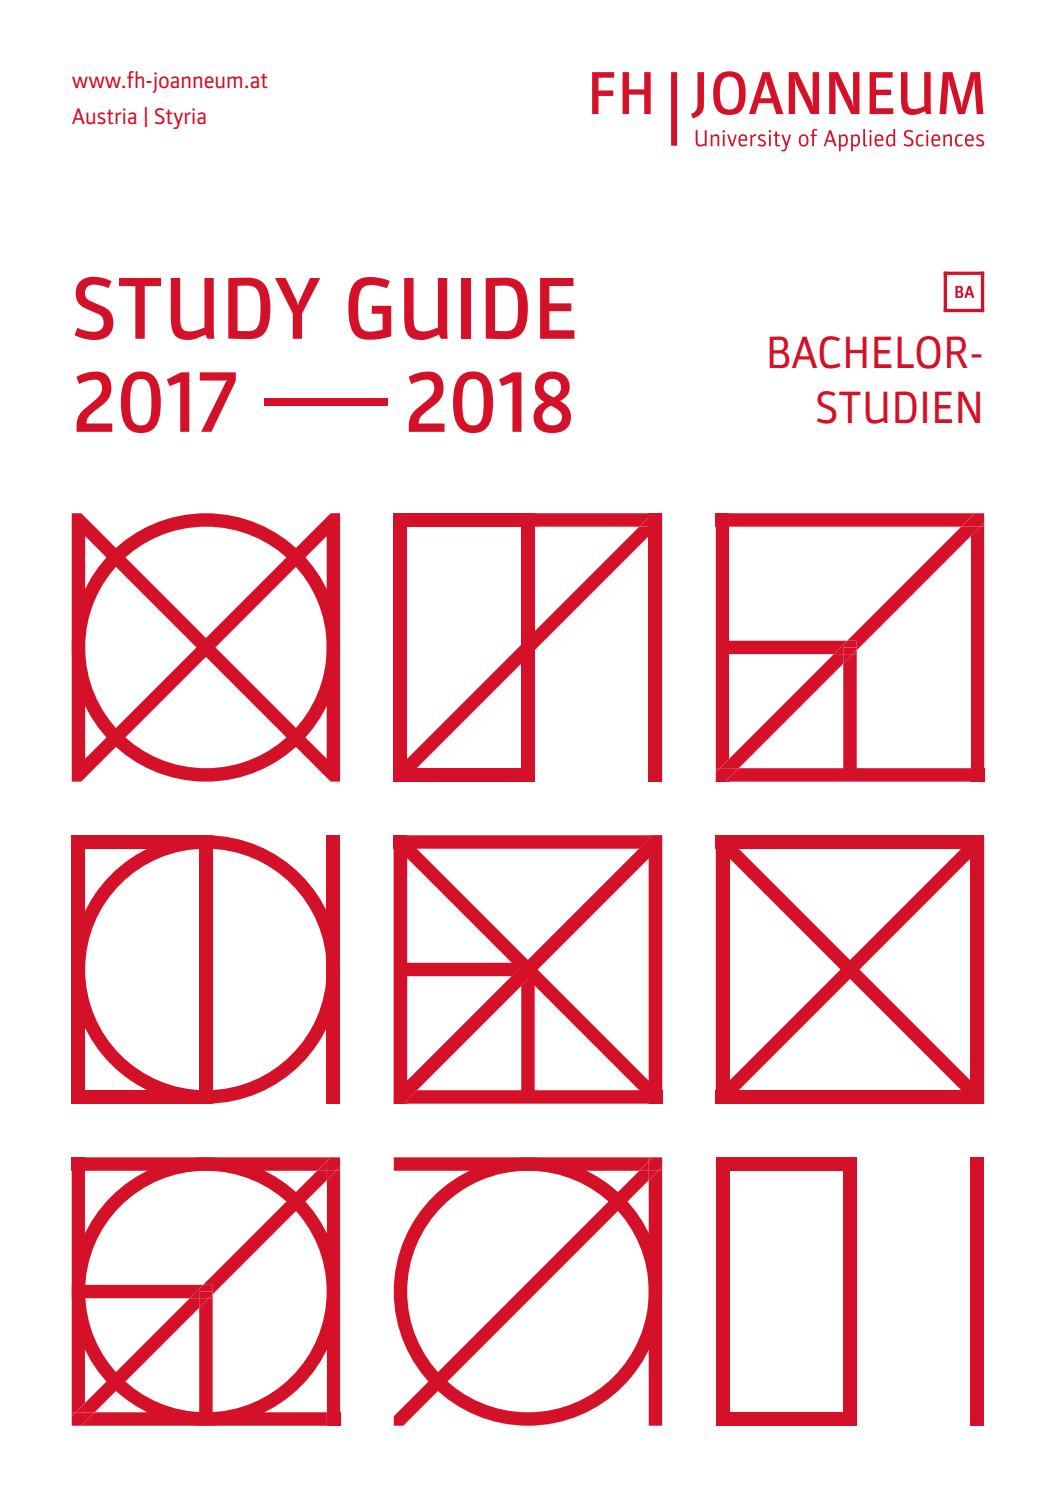 Study Guide 2017/2018 by FH JOANNEUM - University of Applied ...